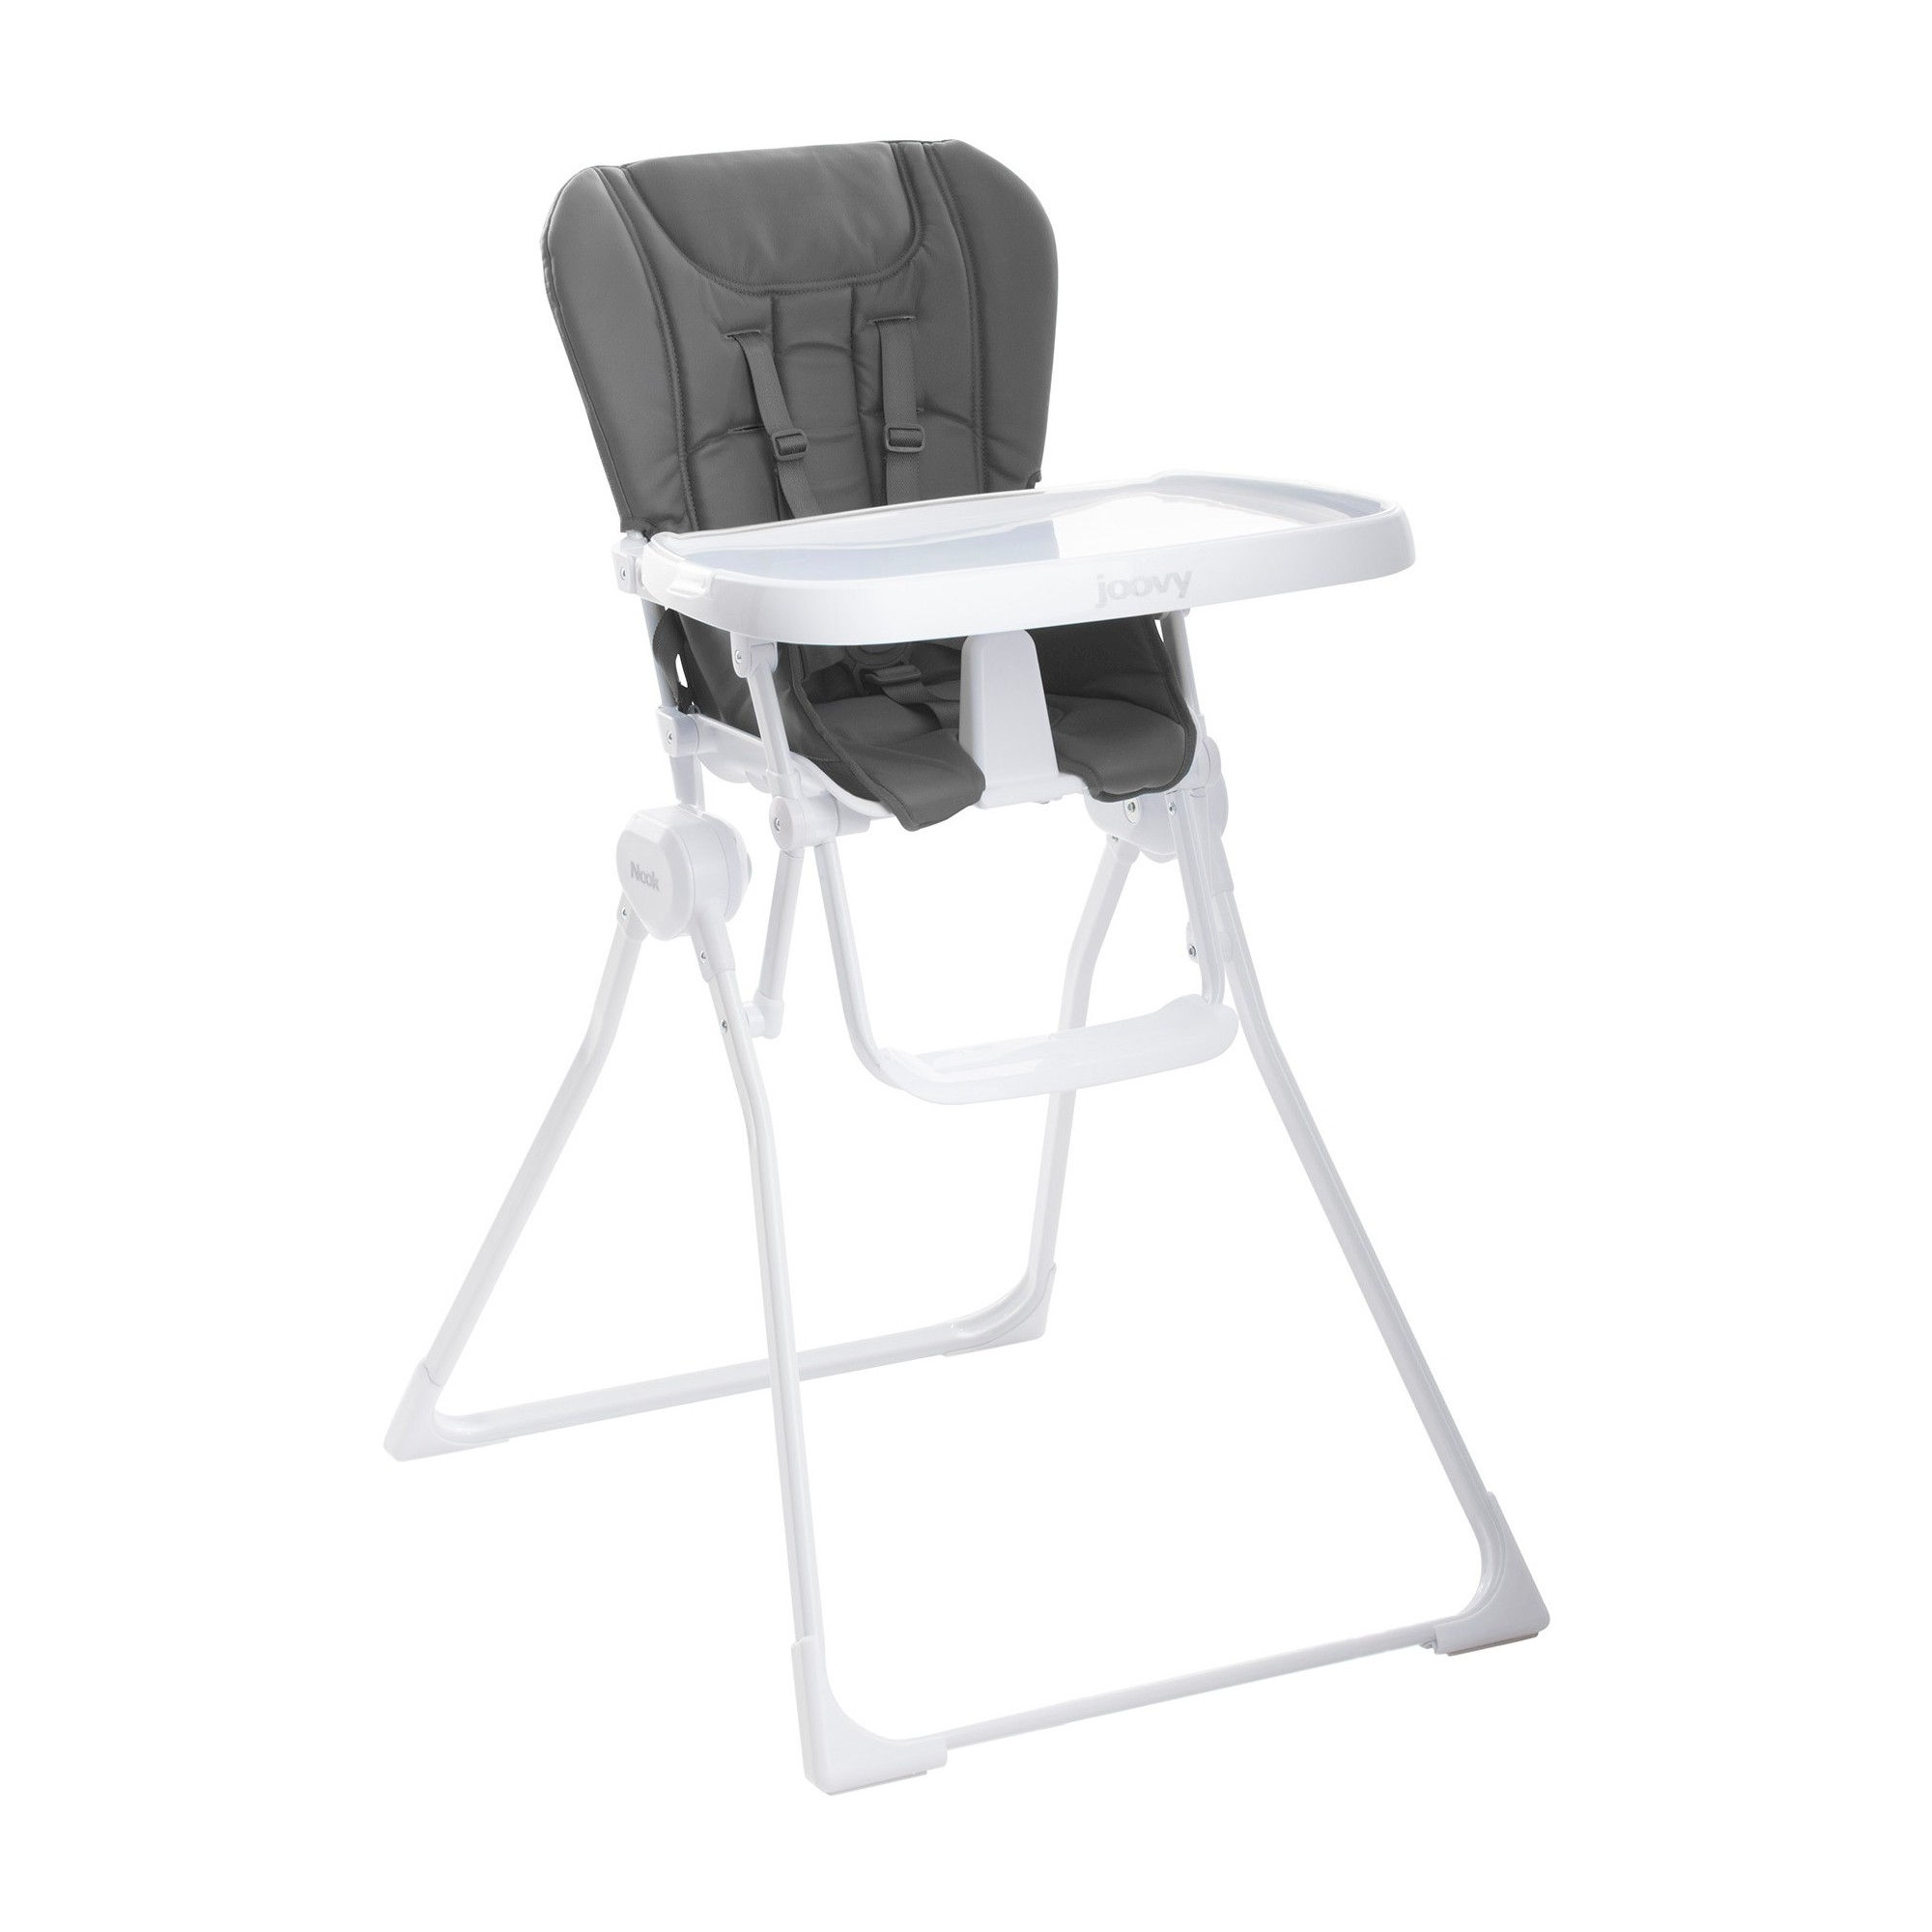 Joovy New Nook High Chair Charcoal Best High Chairs Big Comfy Chair Baby High Chair